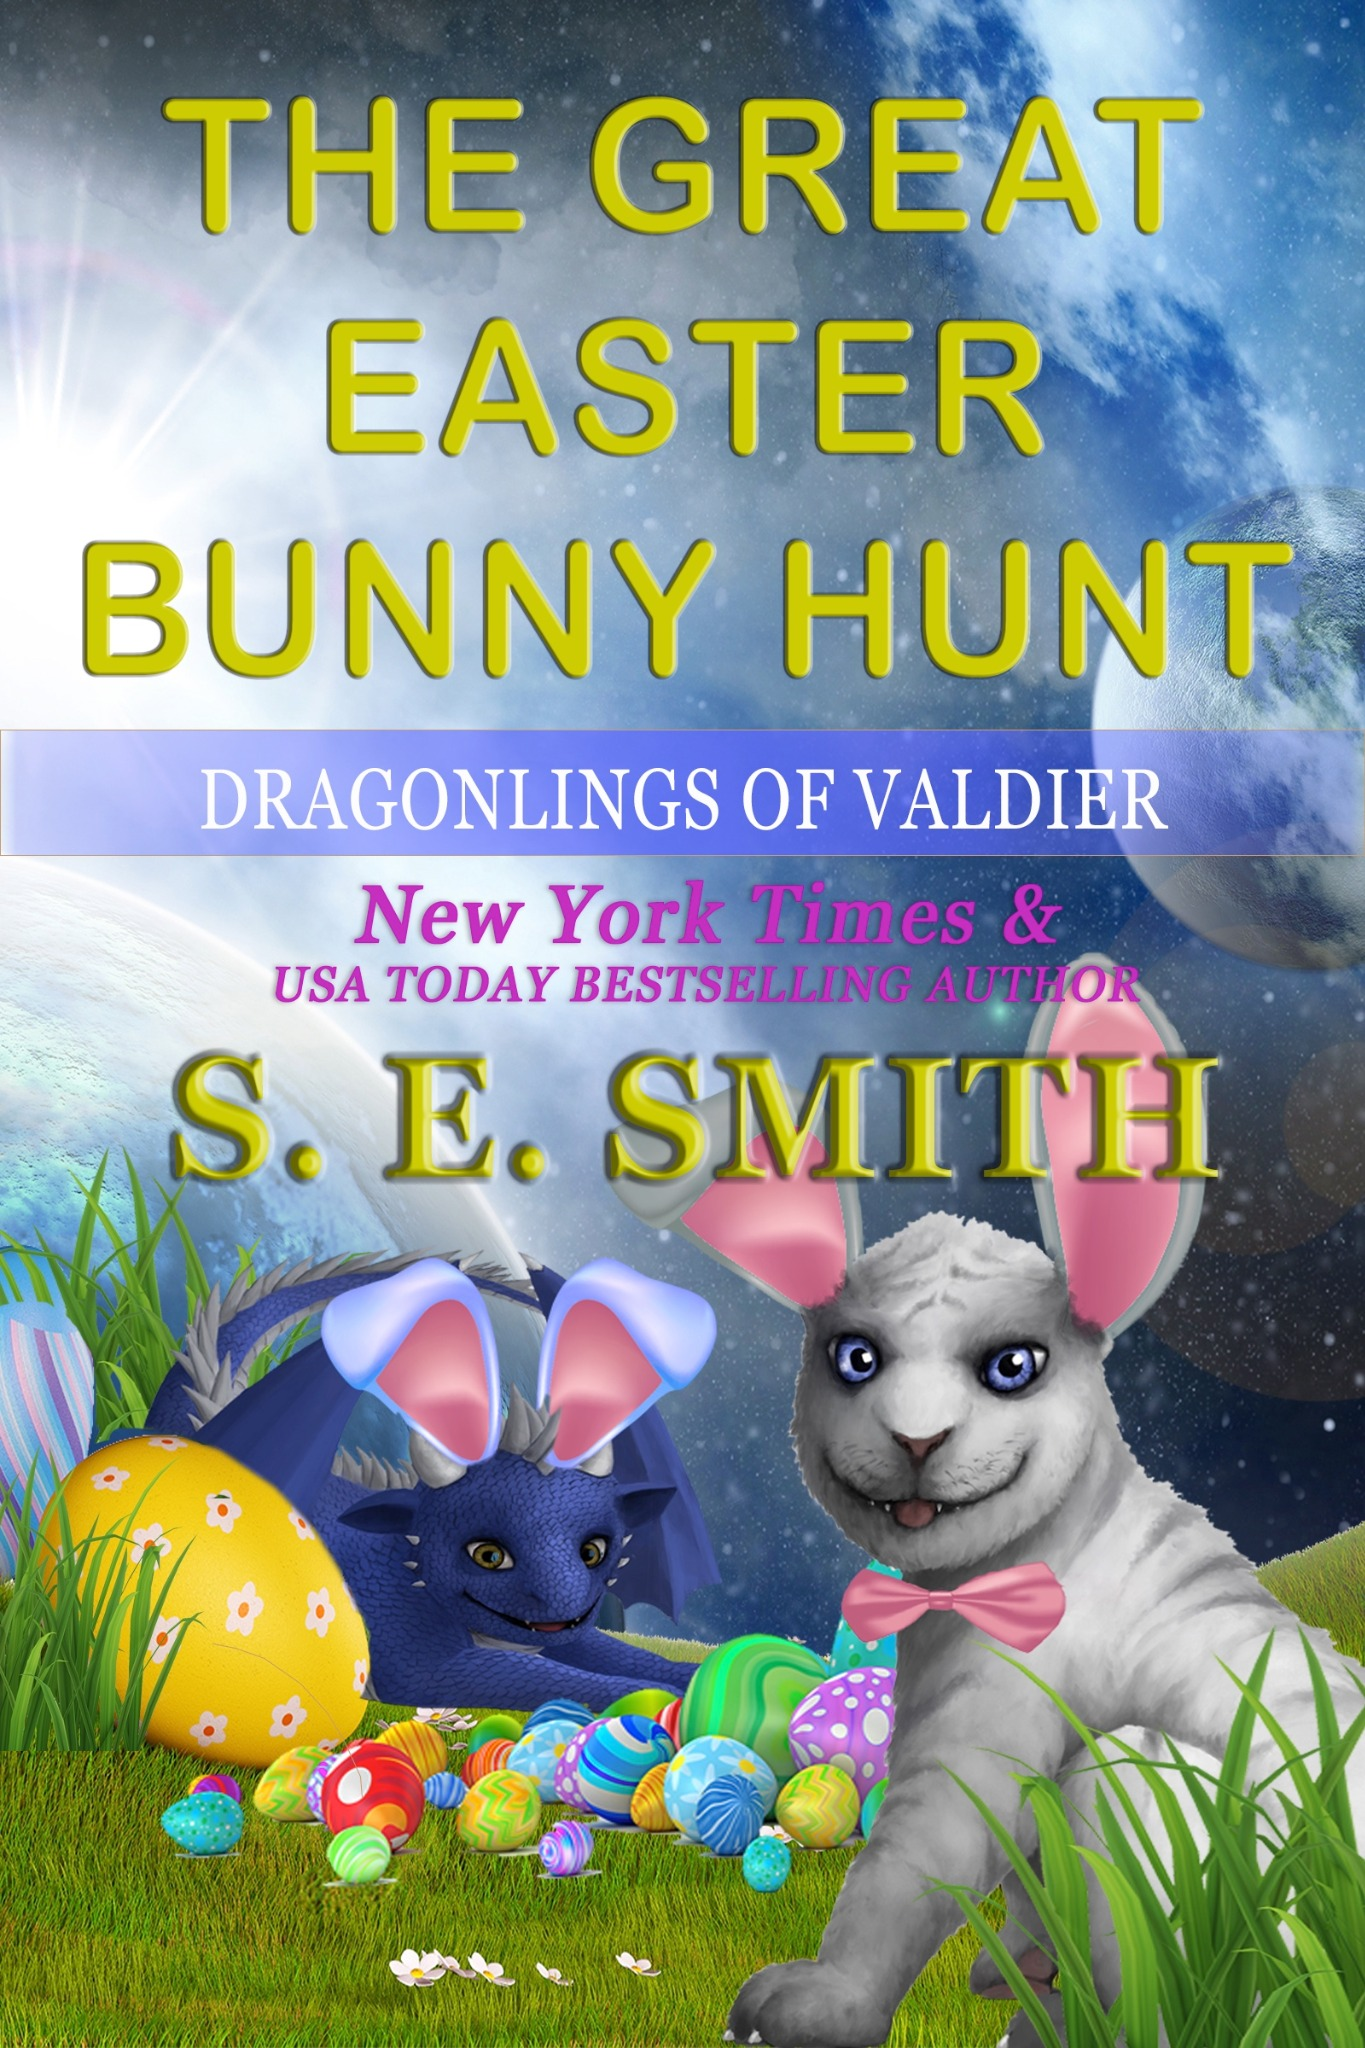 The Great Easter Bunny Hunt: A Dragonlings of Valdier short